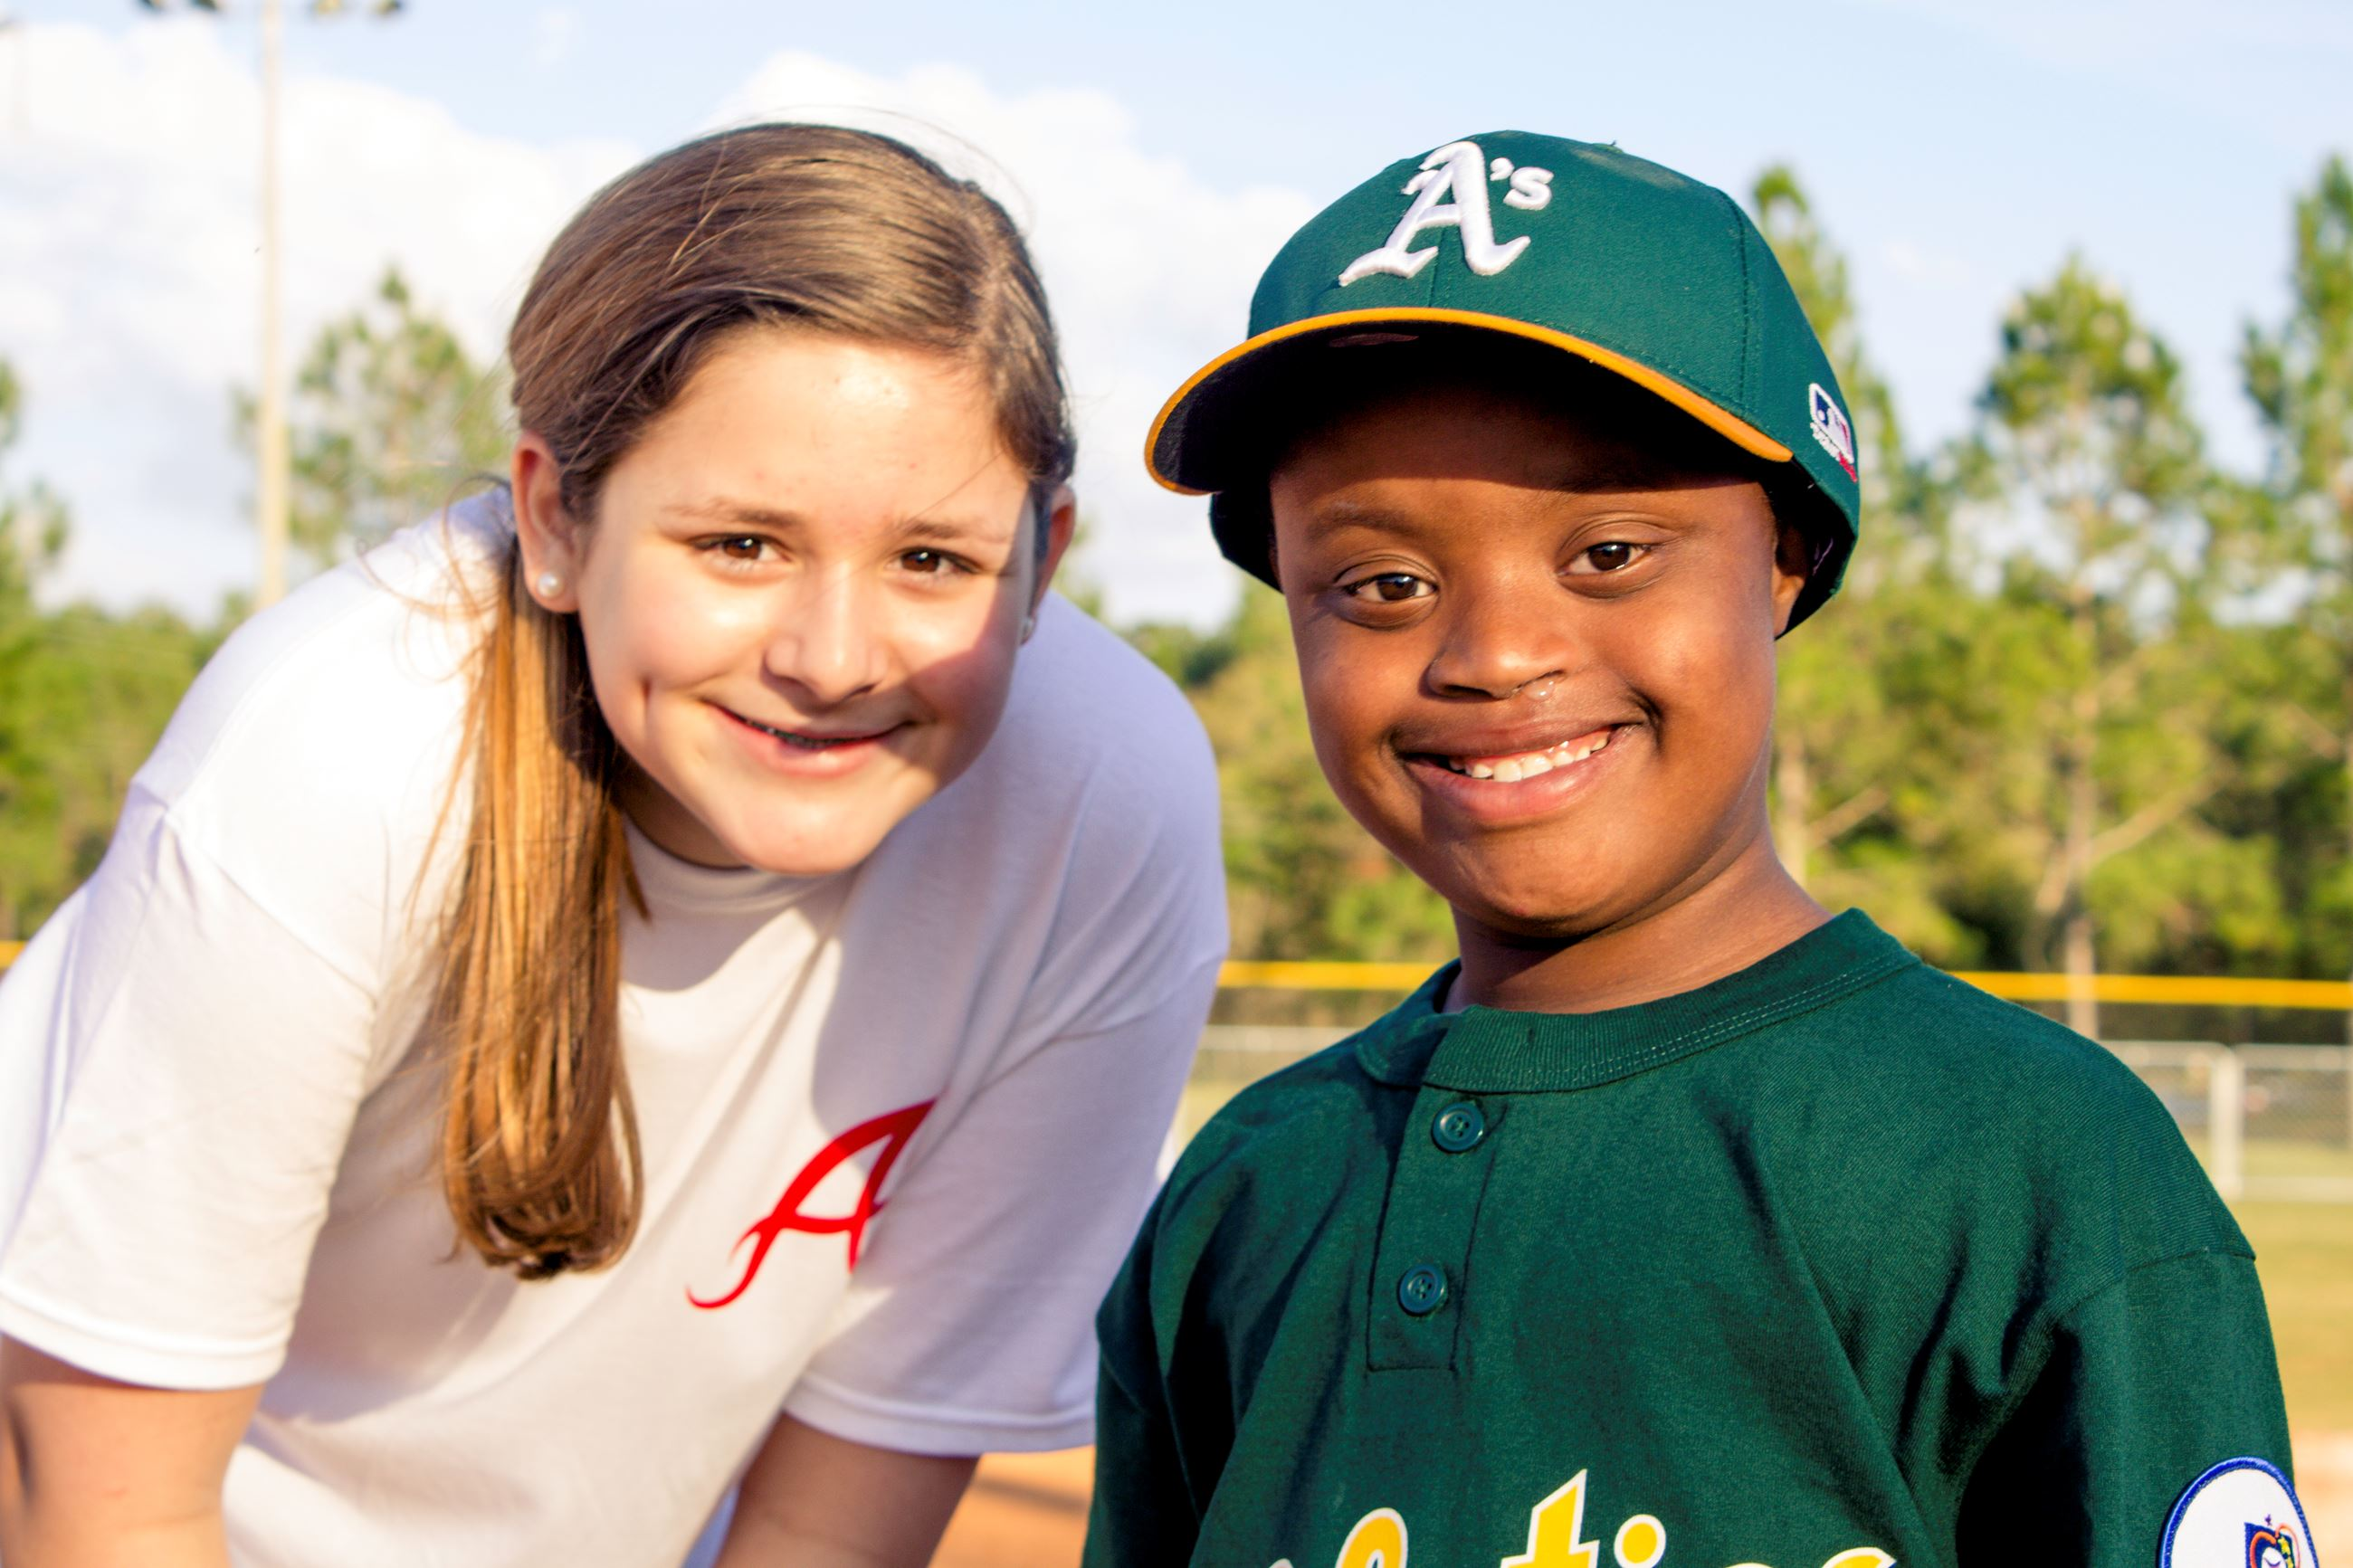 Image of a Miracle League Baseball player with his buddy.